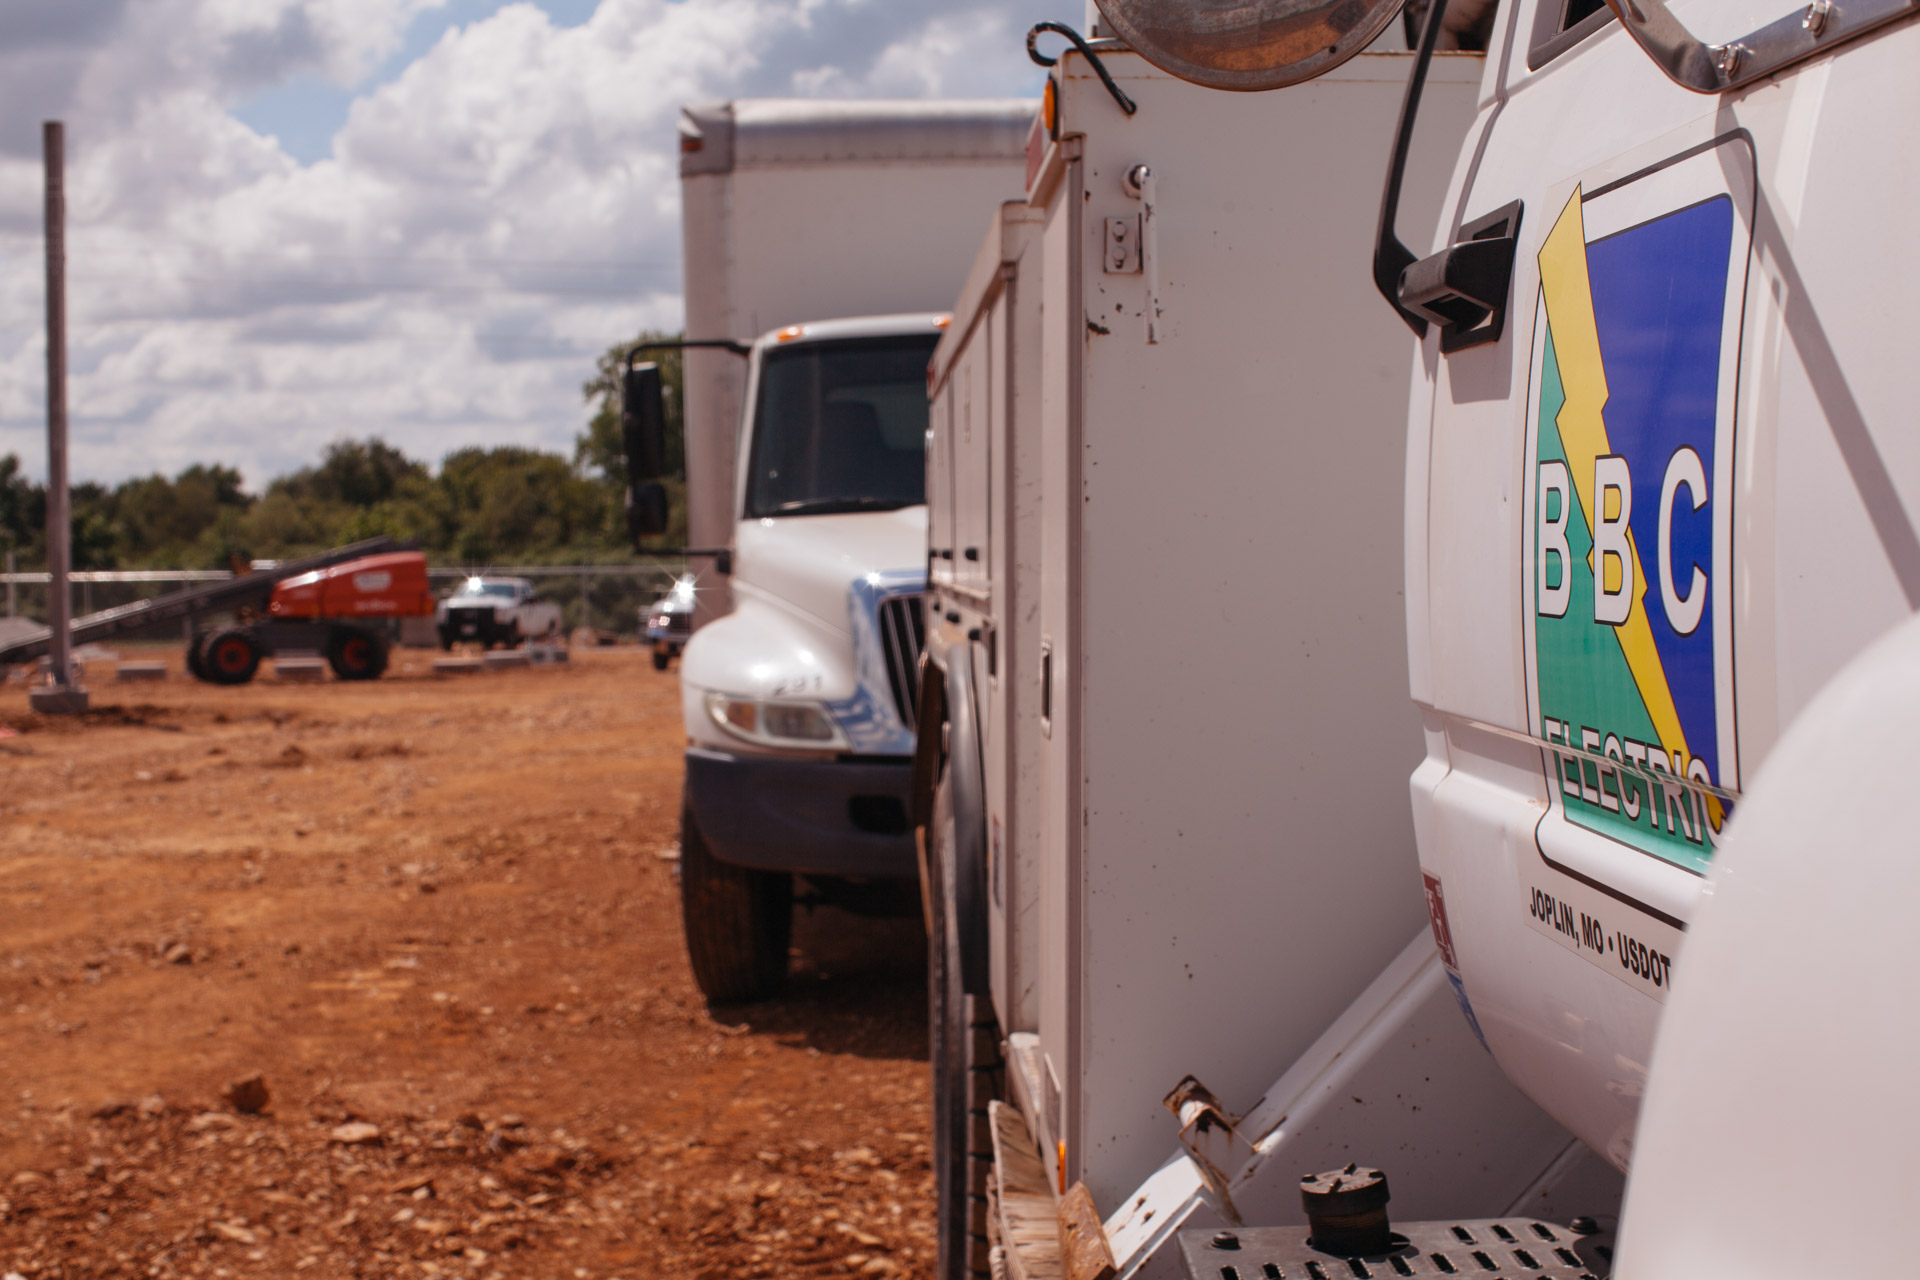 Image of side of BBC Electric truck during Empire Substation construction in Joplin, MO.